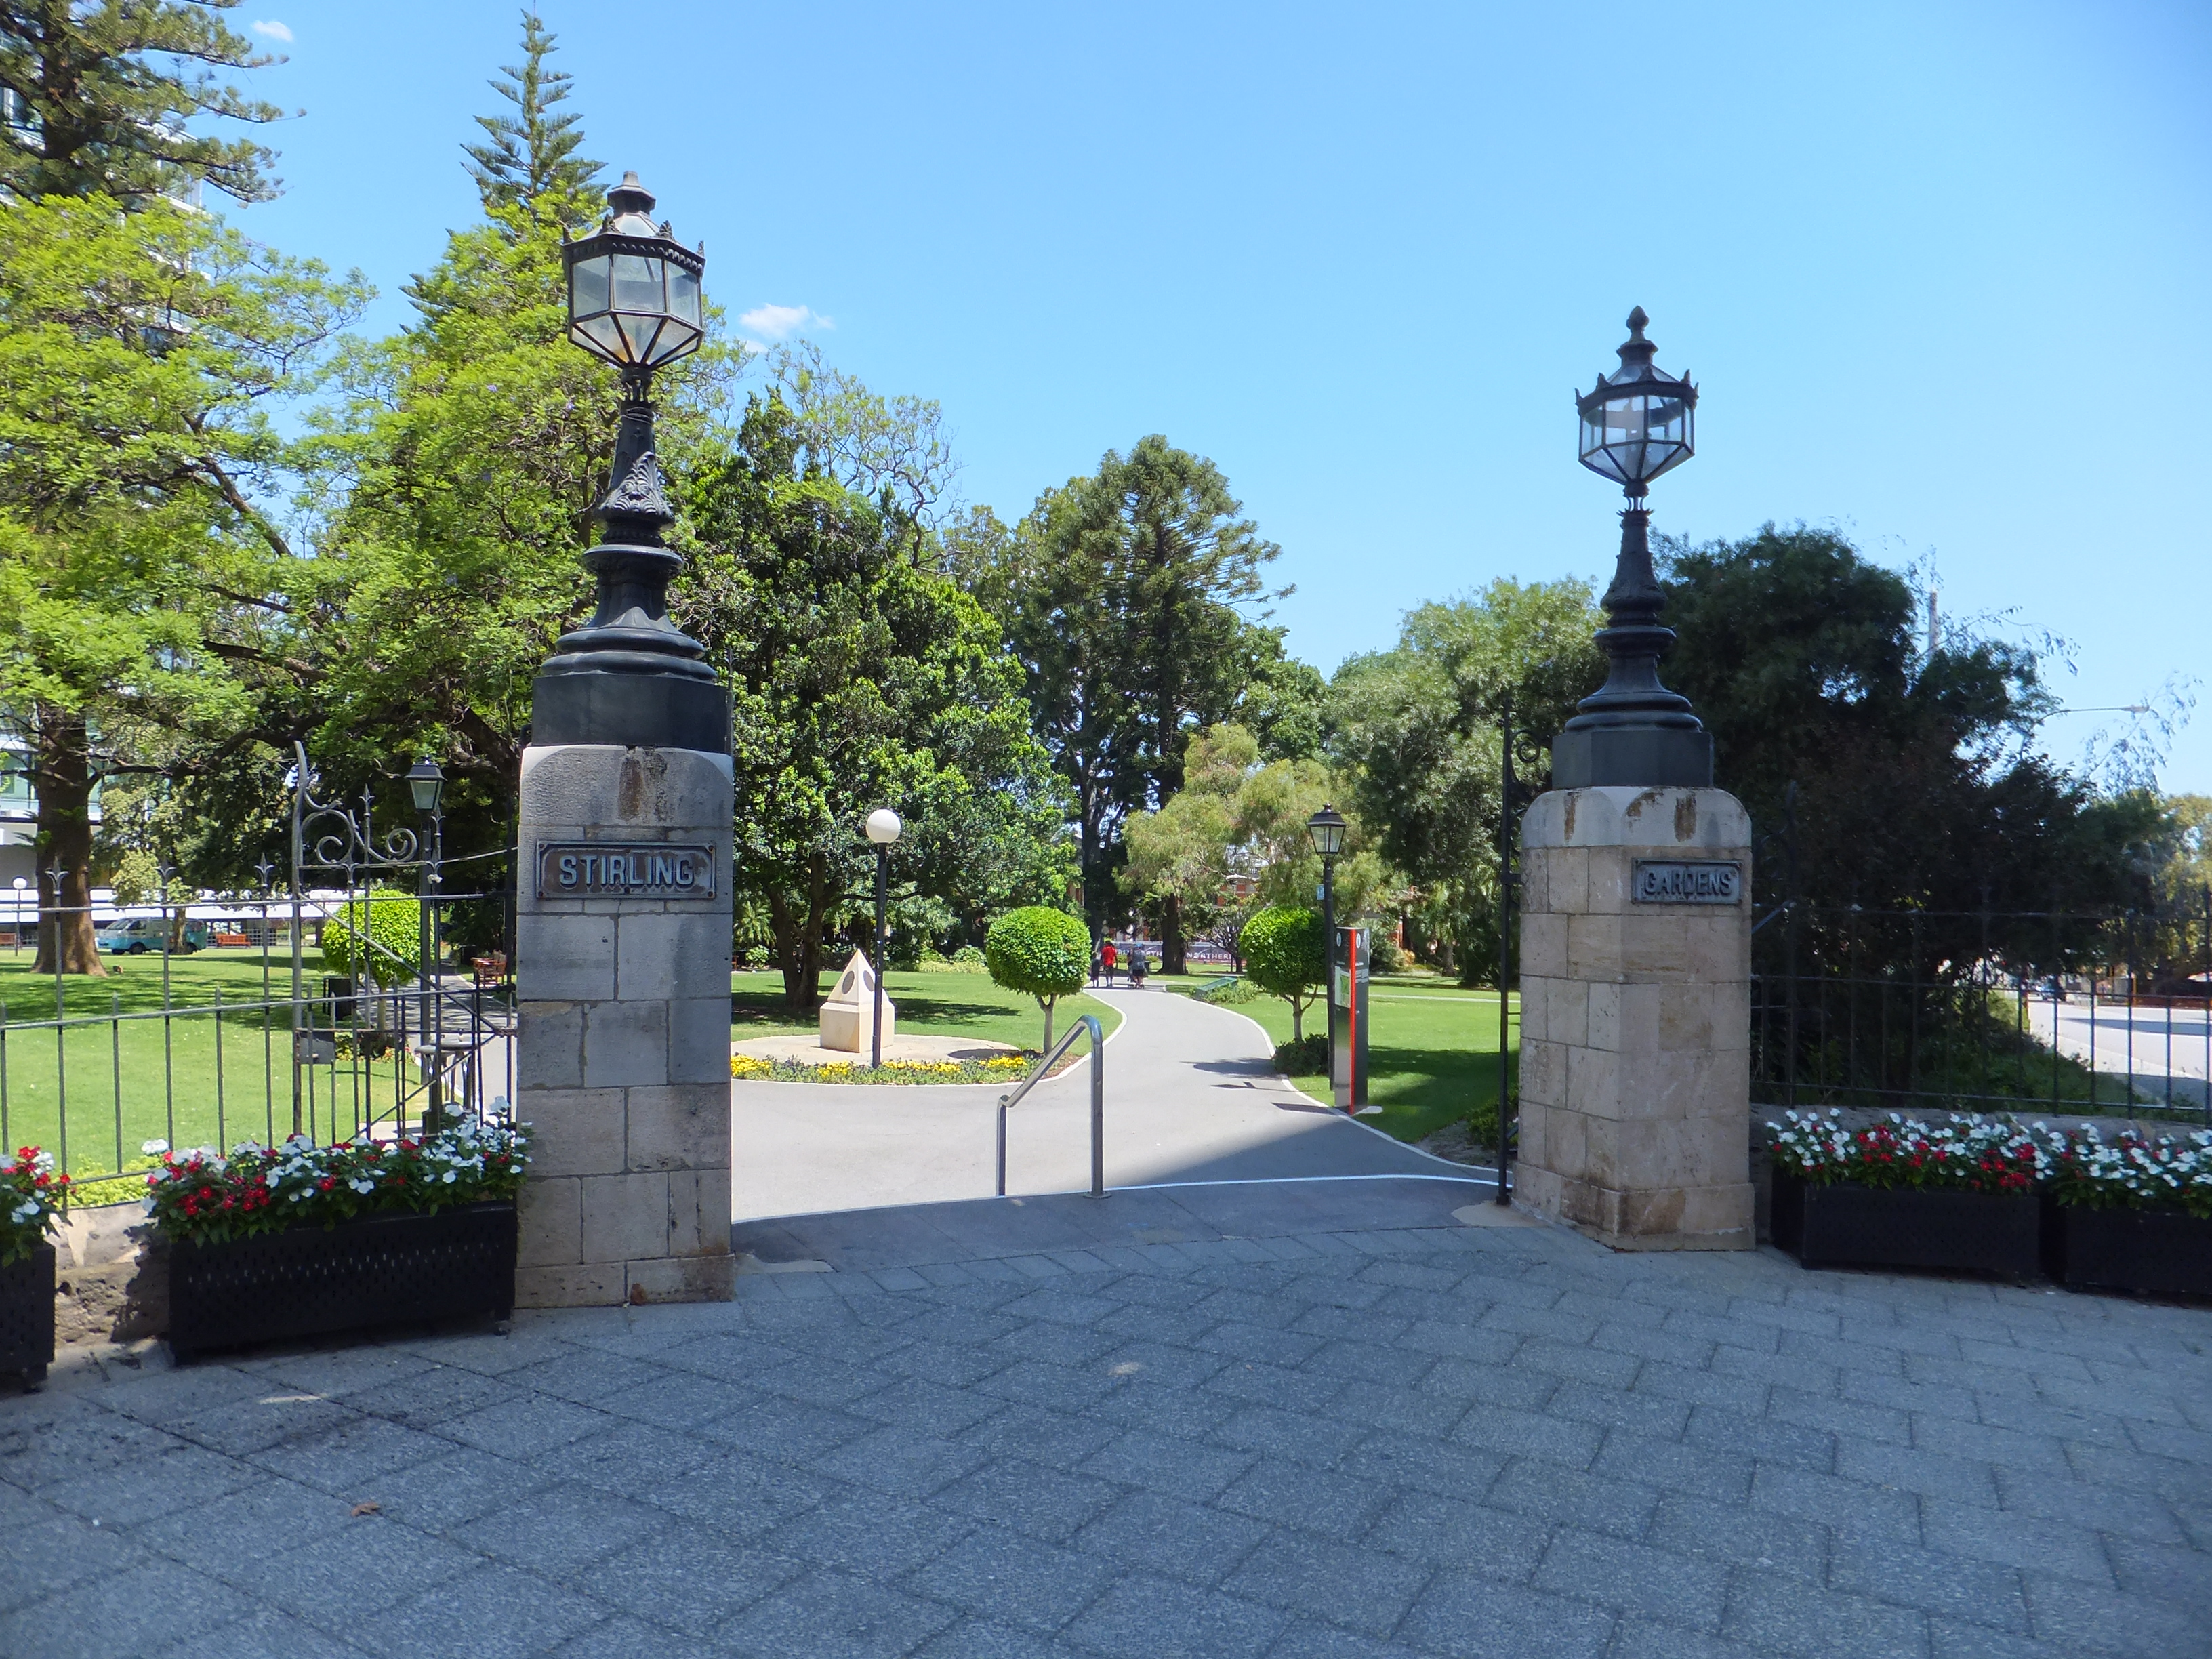 File Entry Gates To Stirling Wikimedia Commons